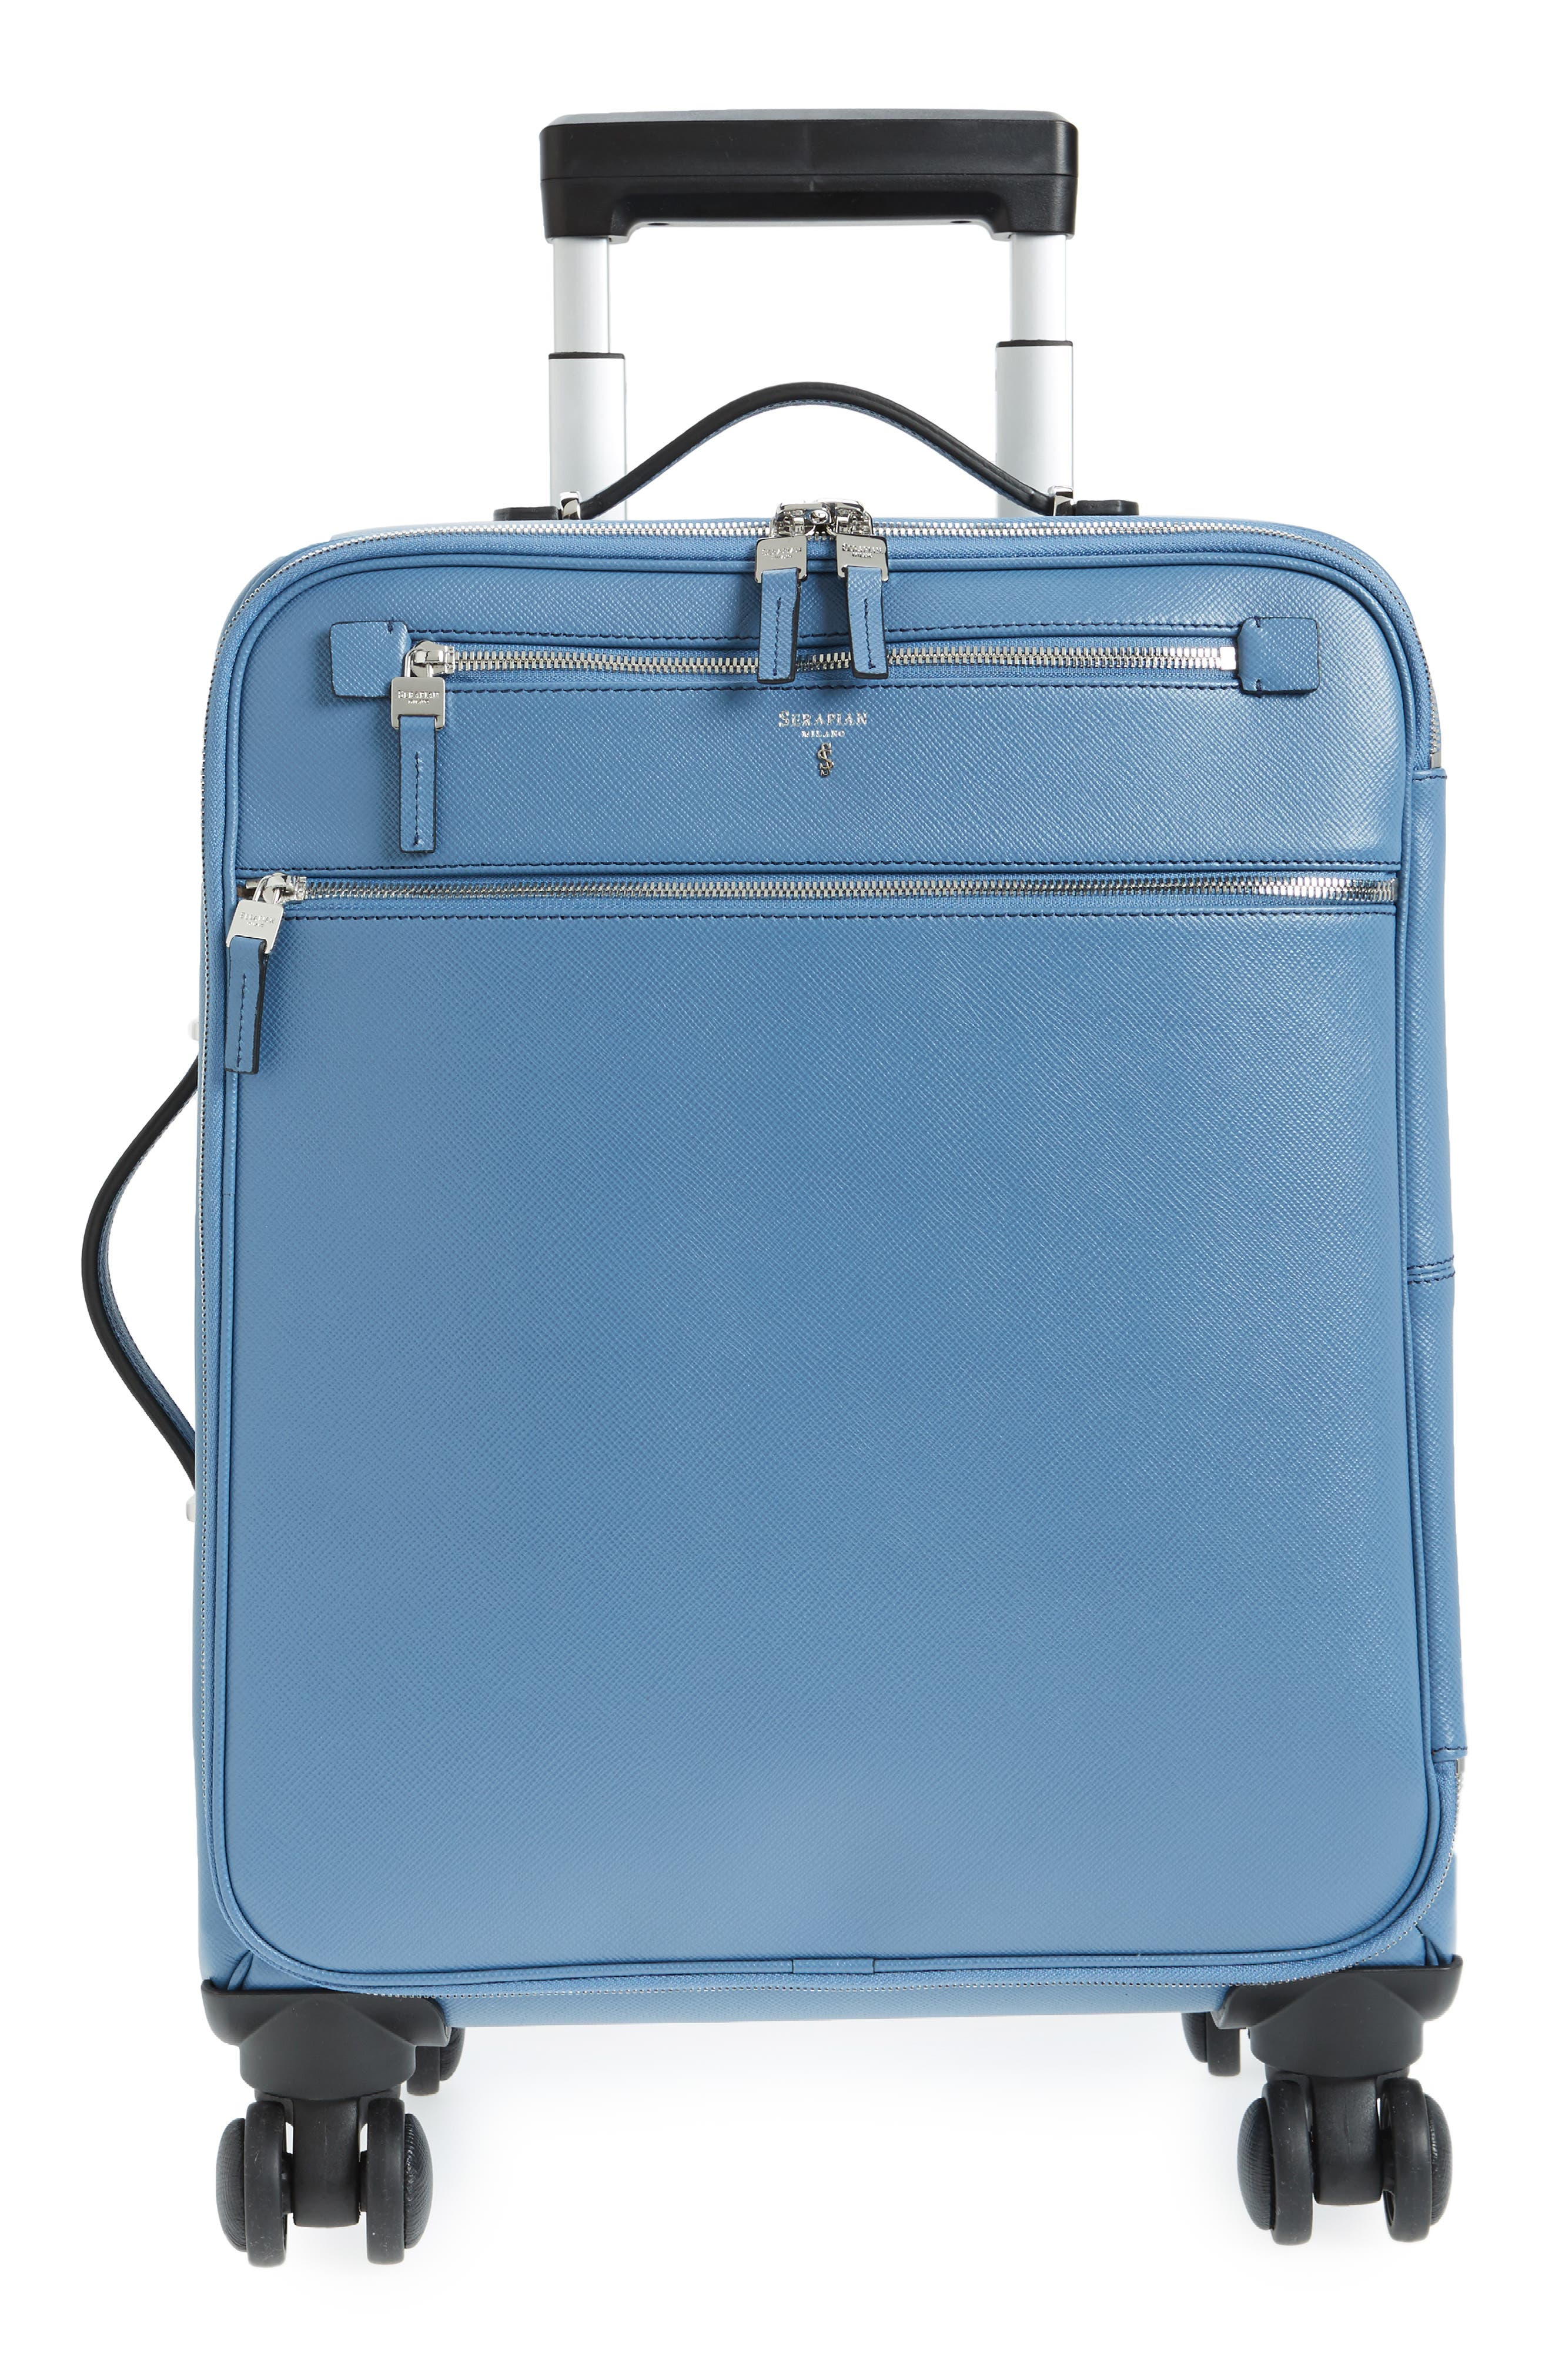 Trolley Spinner Wheeled Carry-On Suitcase,                         Main,                         color, Blue Jeans